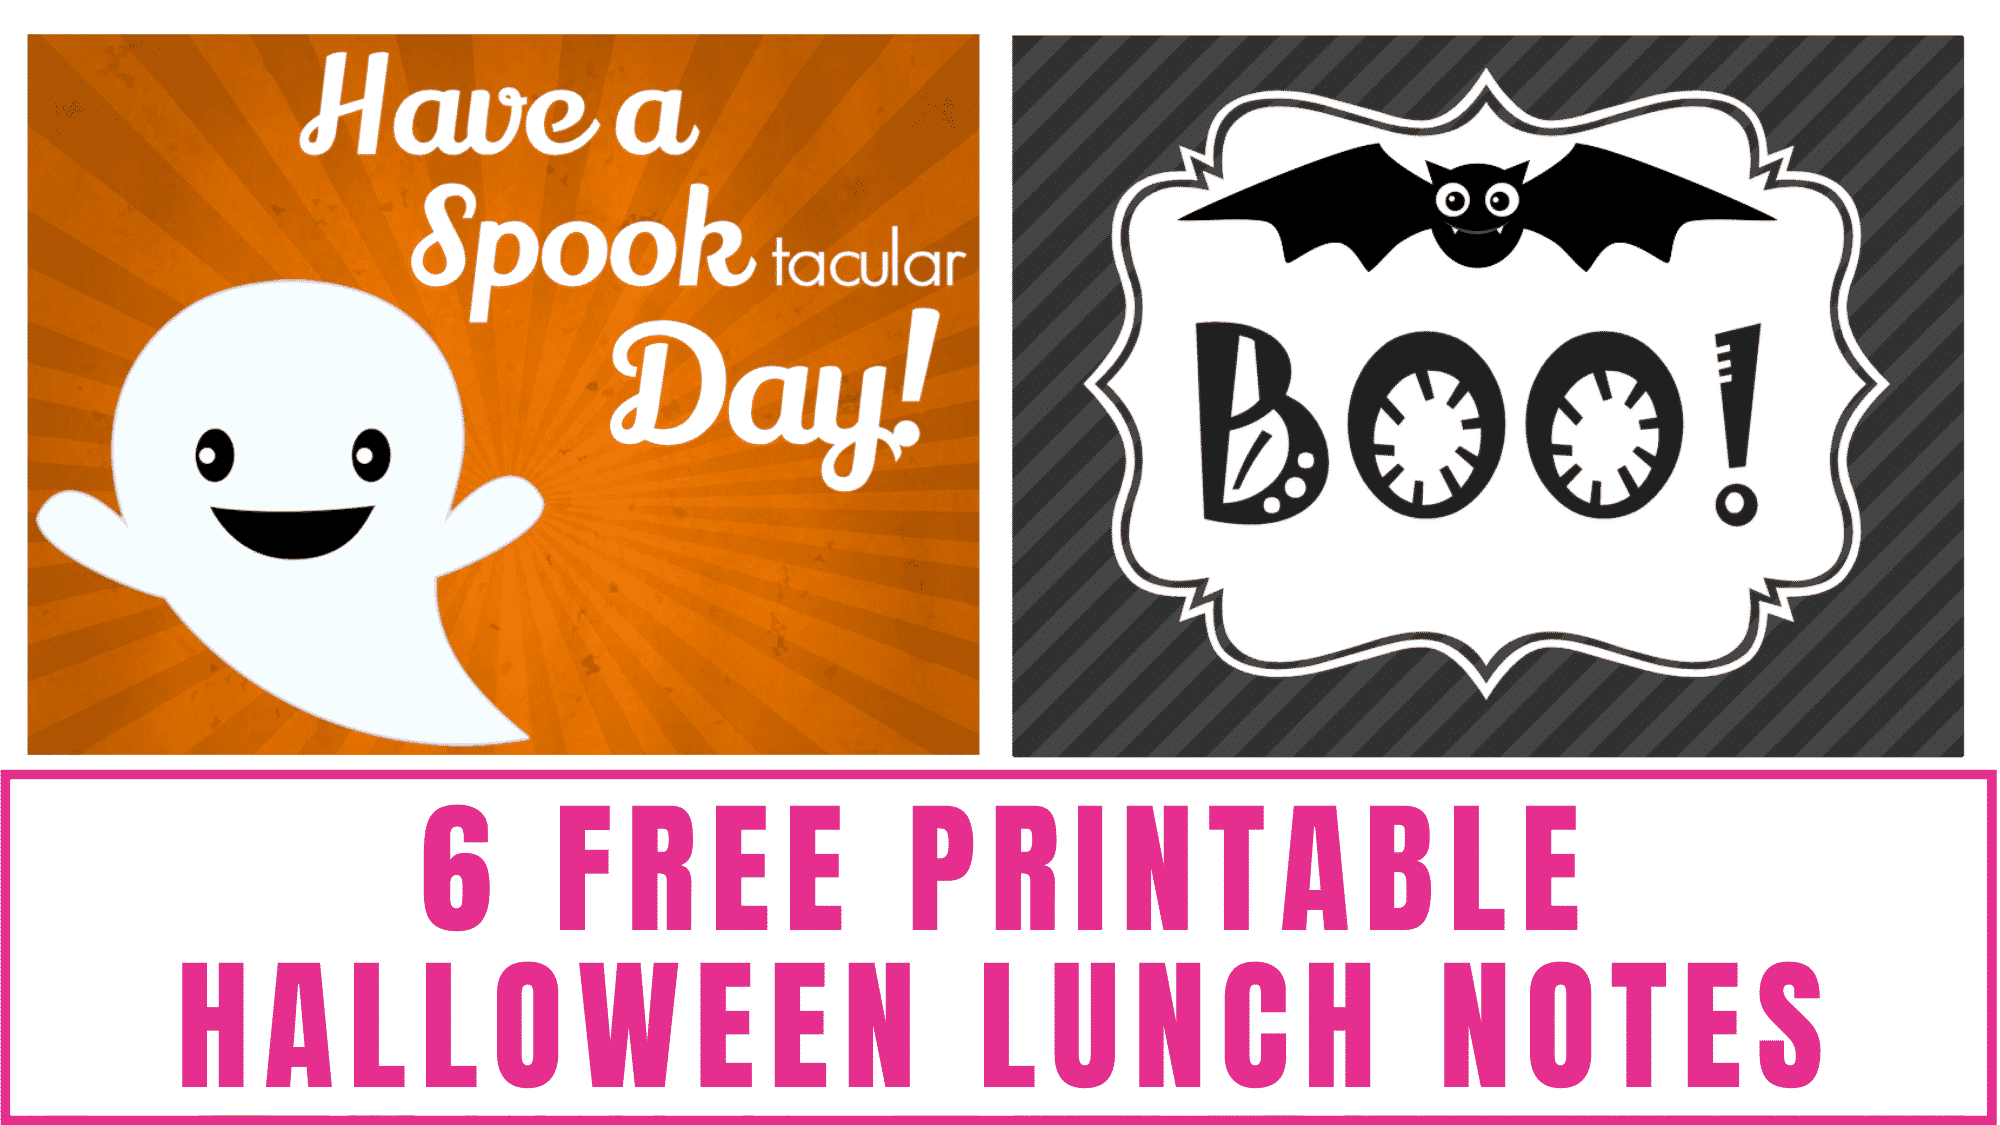 Surprise your kid with one these fun free printable Halloween lunch notes to get them in the Halloween spirit.